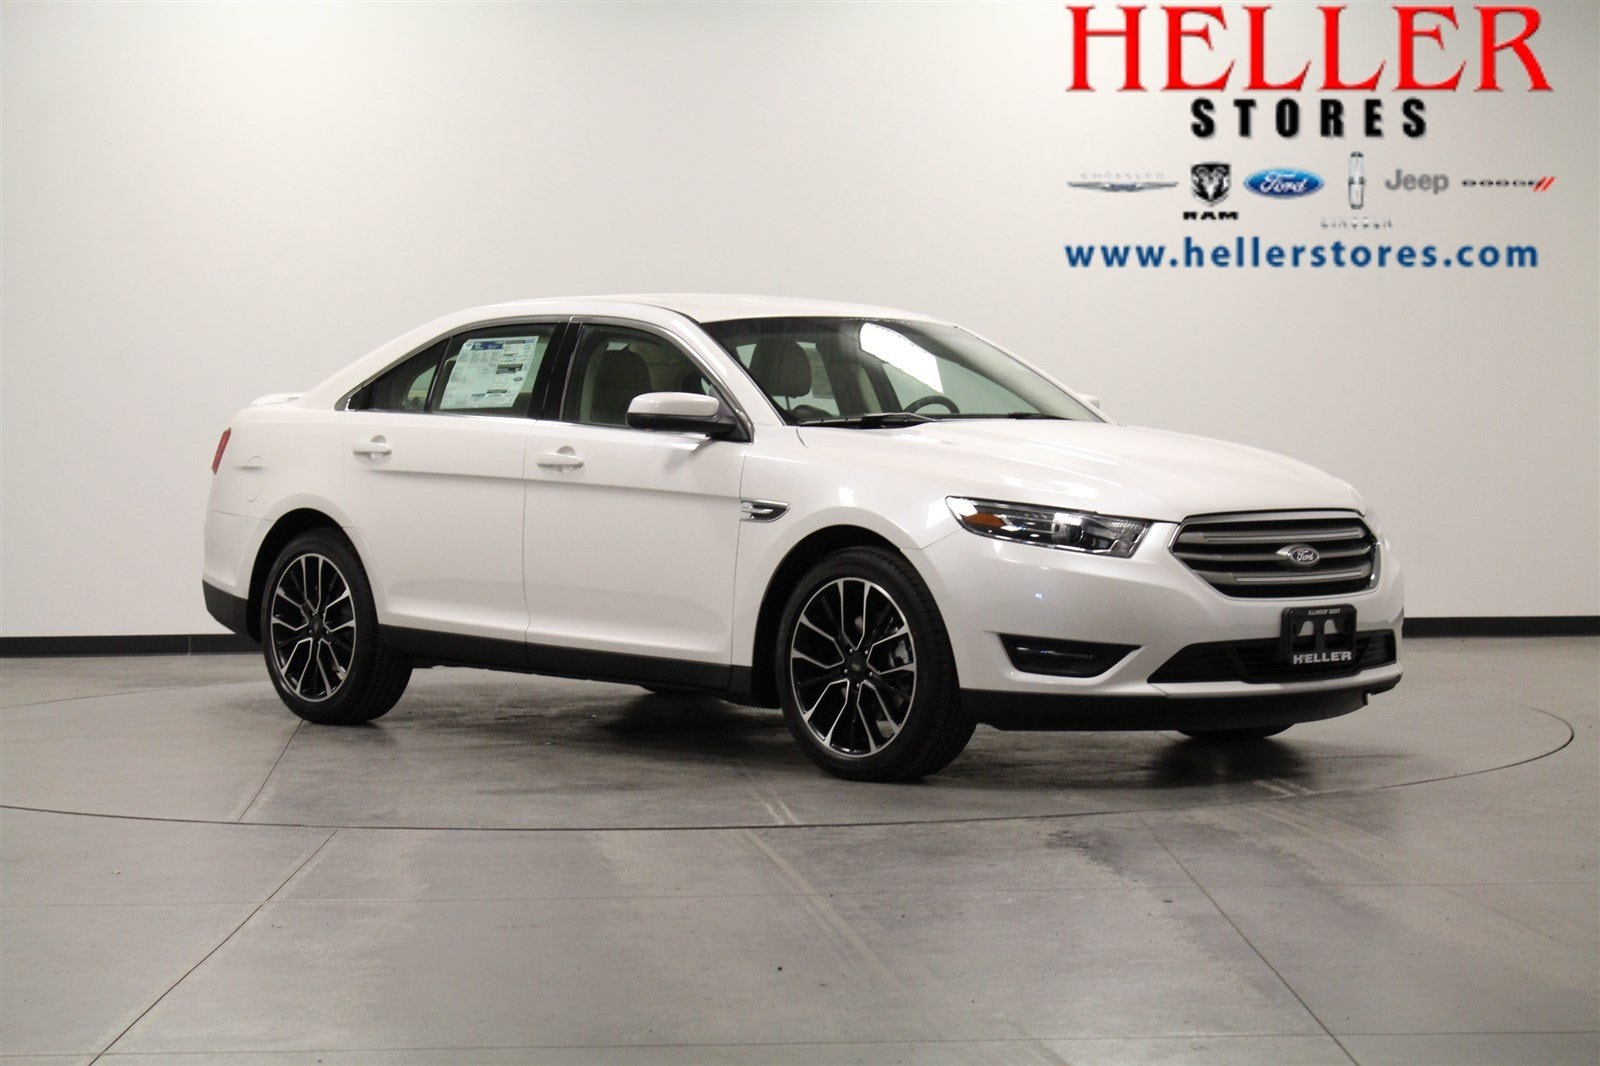 Heller Ford El Paso Il >> New Ford And Used Car Dealer Serving El Paso Heller Ford Sales Inc